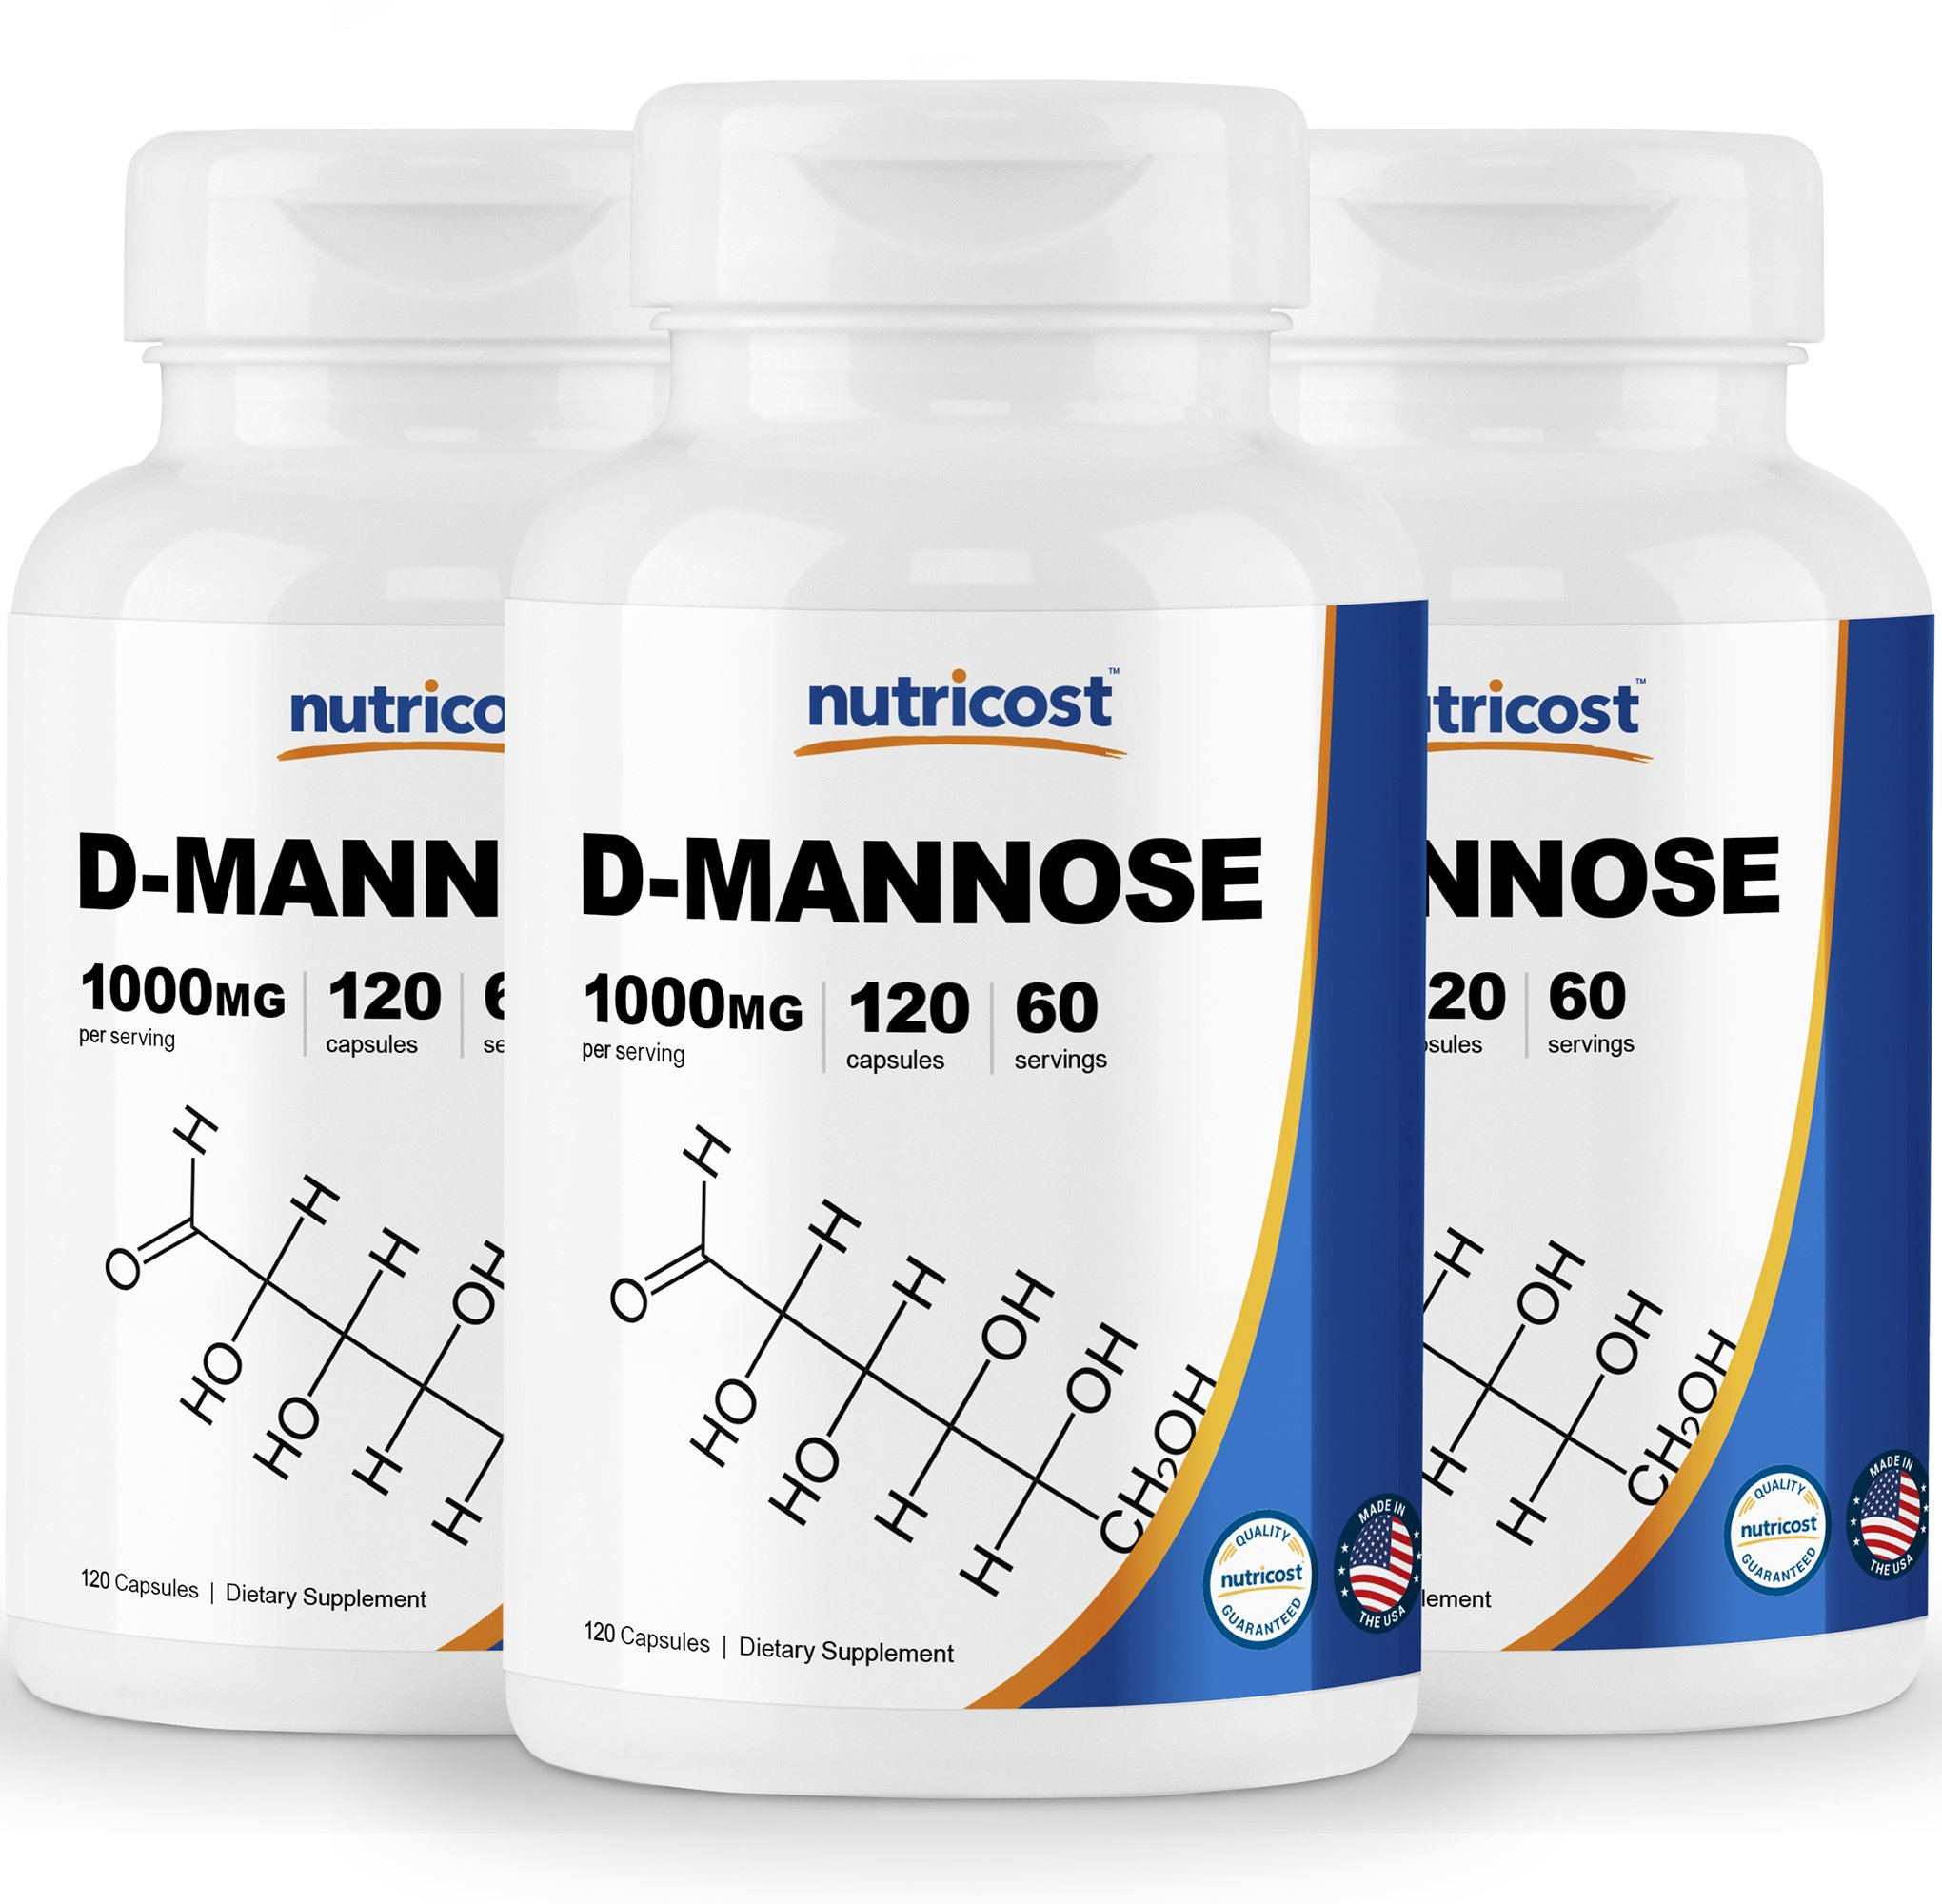 Nutricost D-Mannose 500 mg, 120 Caps (3 Bottles) - 1000mg Per Serving, Non-GMO and Gluten Free by Nutricost